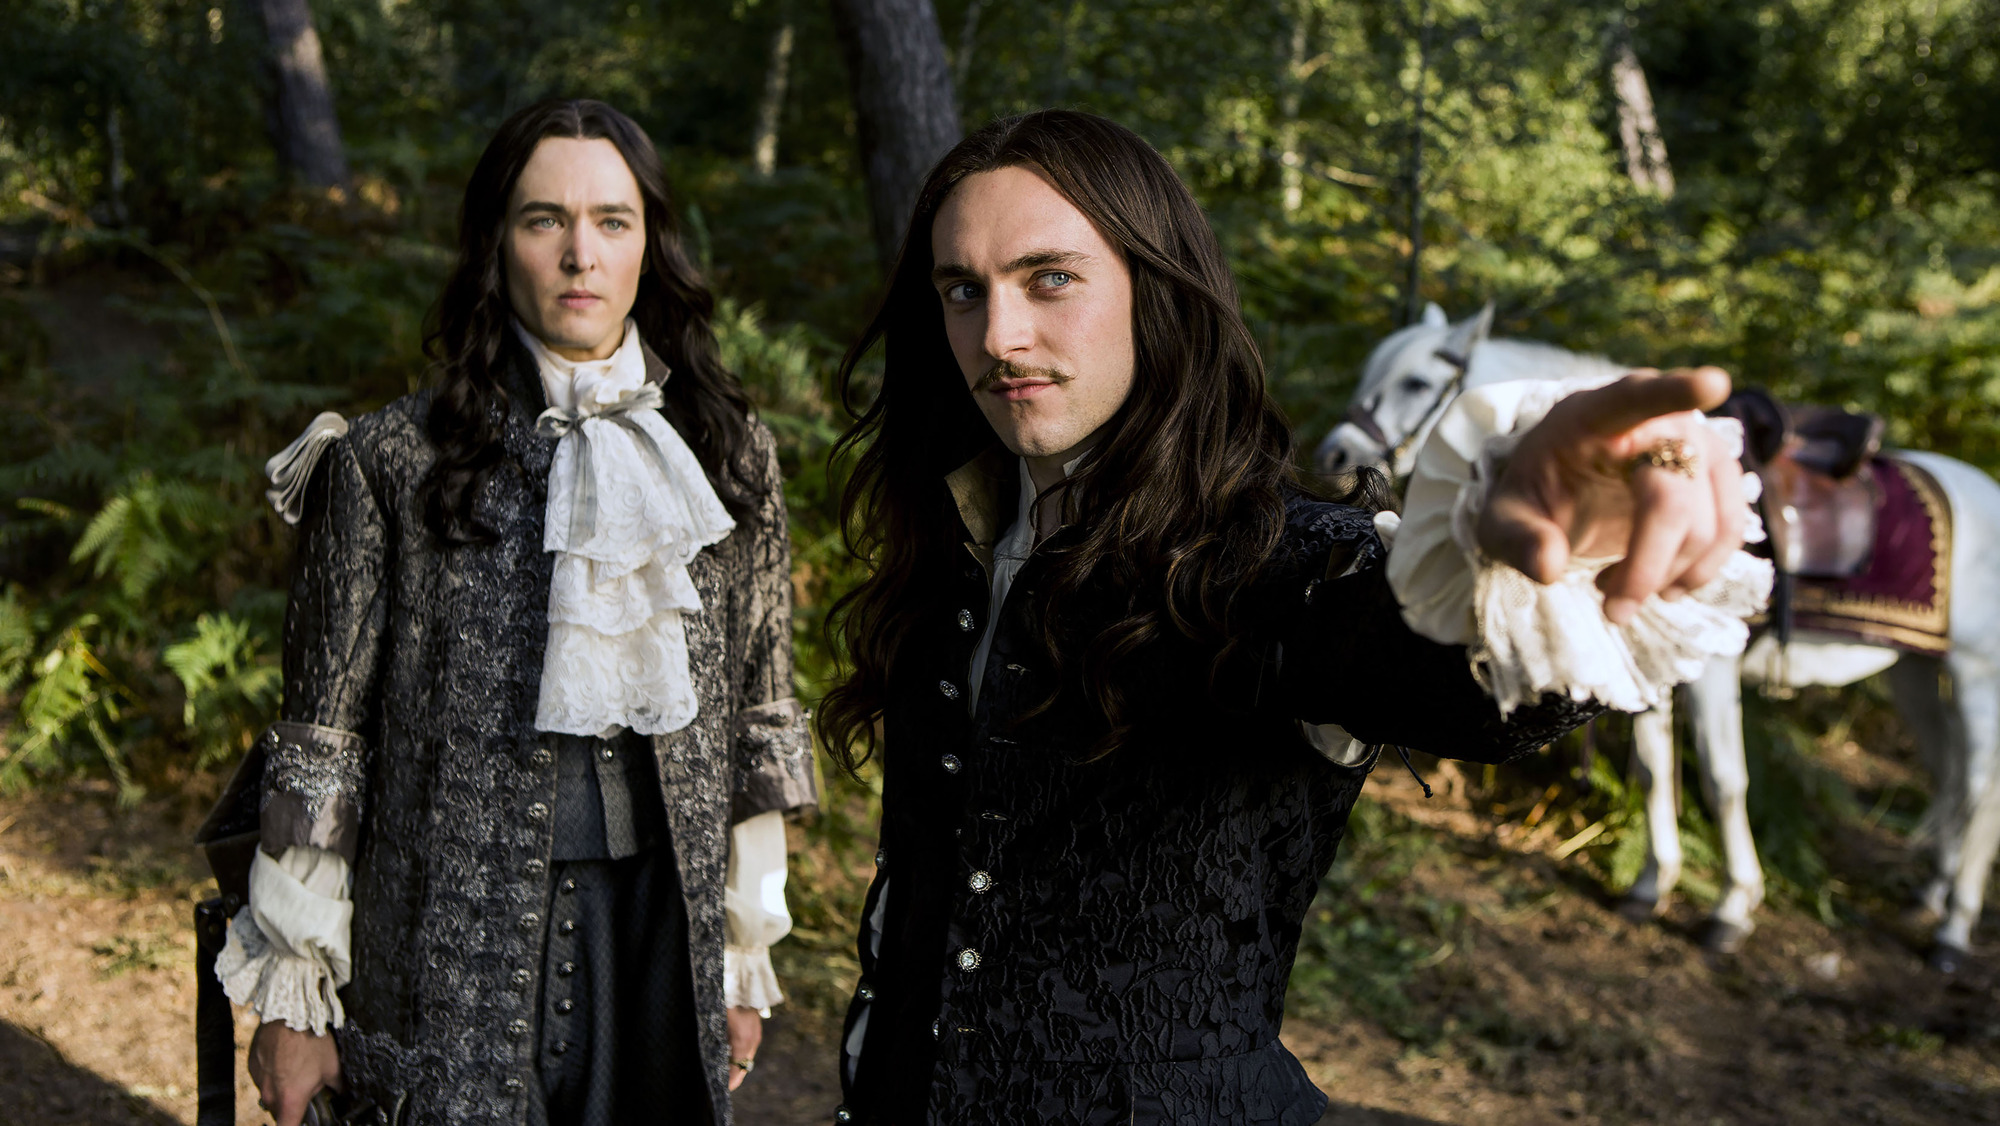 Forget Versailles' filthy sex scenes, viewers were more interested in those hairstyles